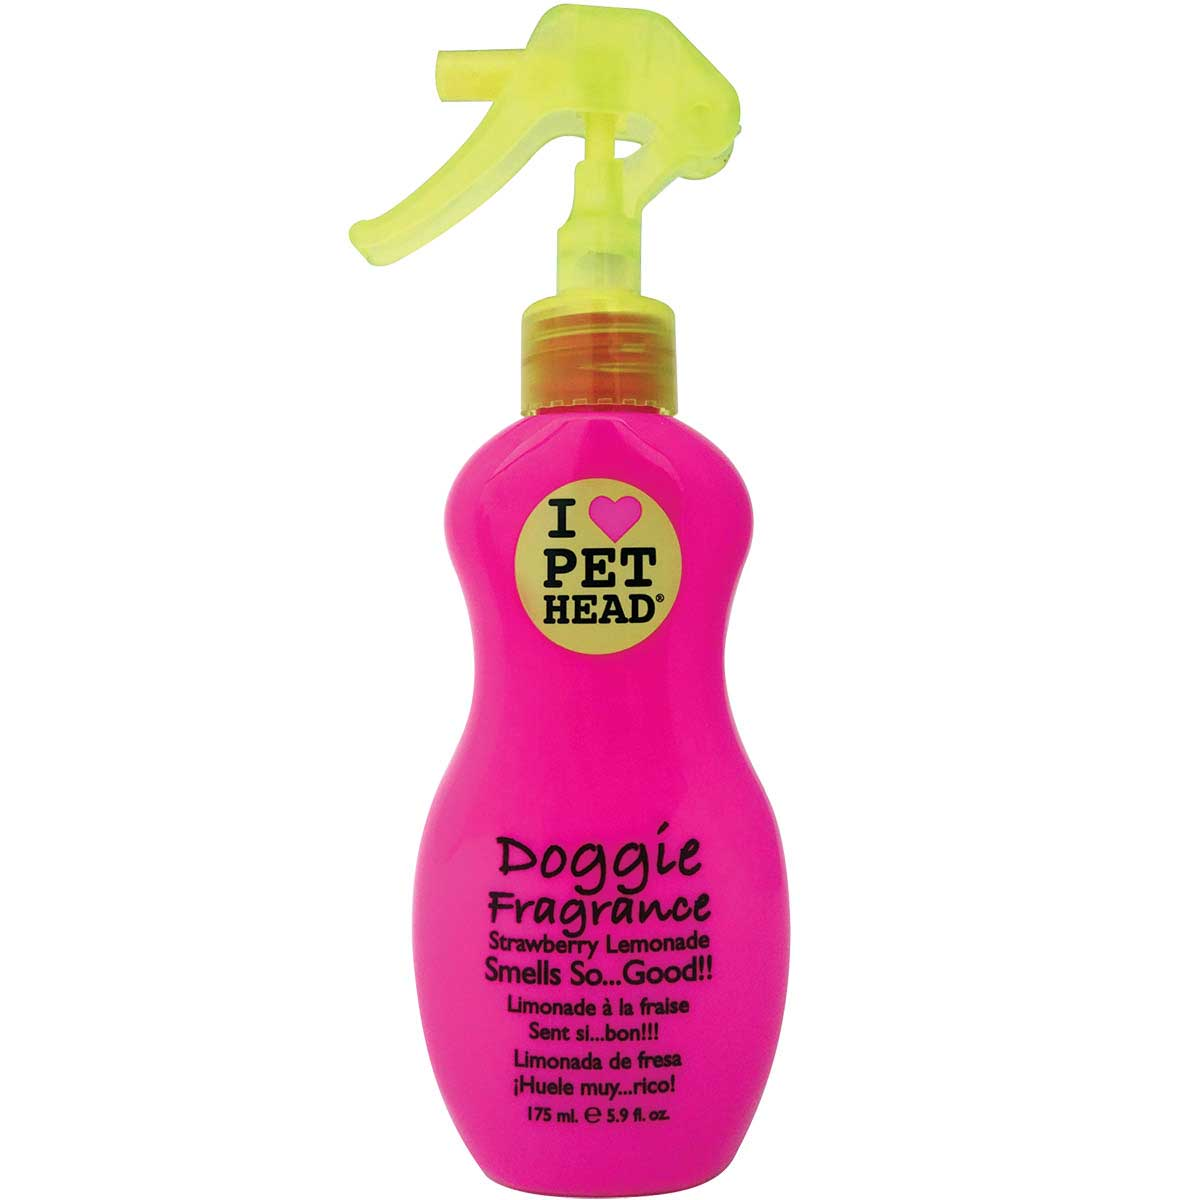 Pet Head Doggie Fragrance Strawberry Lemonade - 5.9 oz